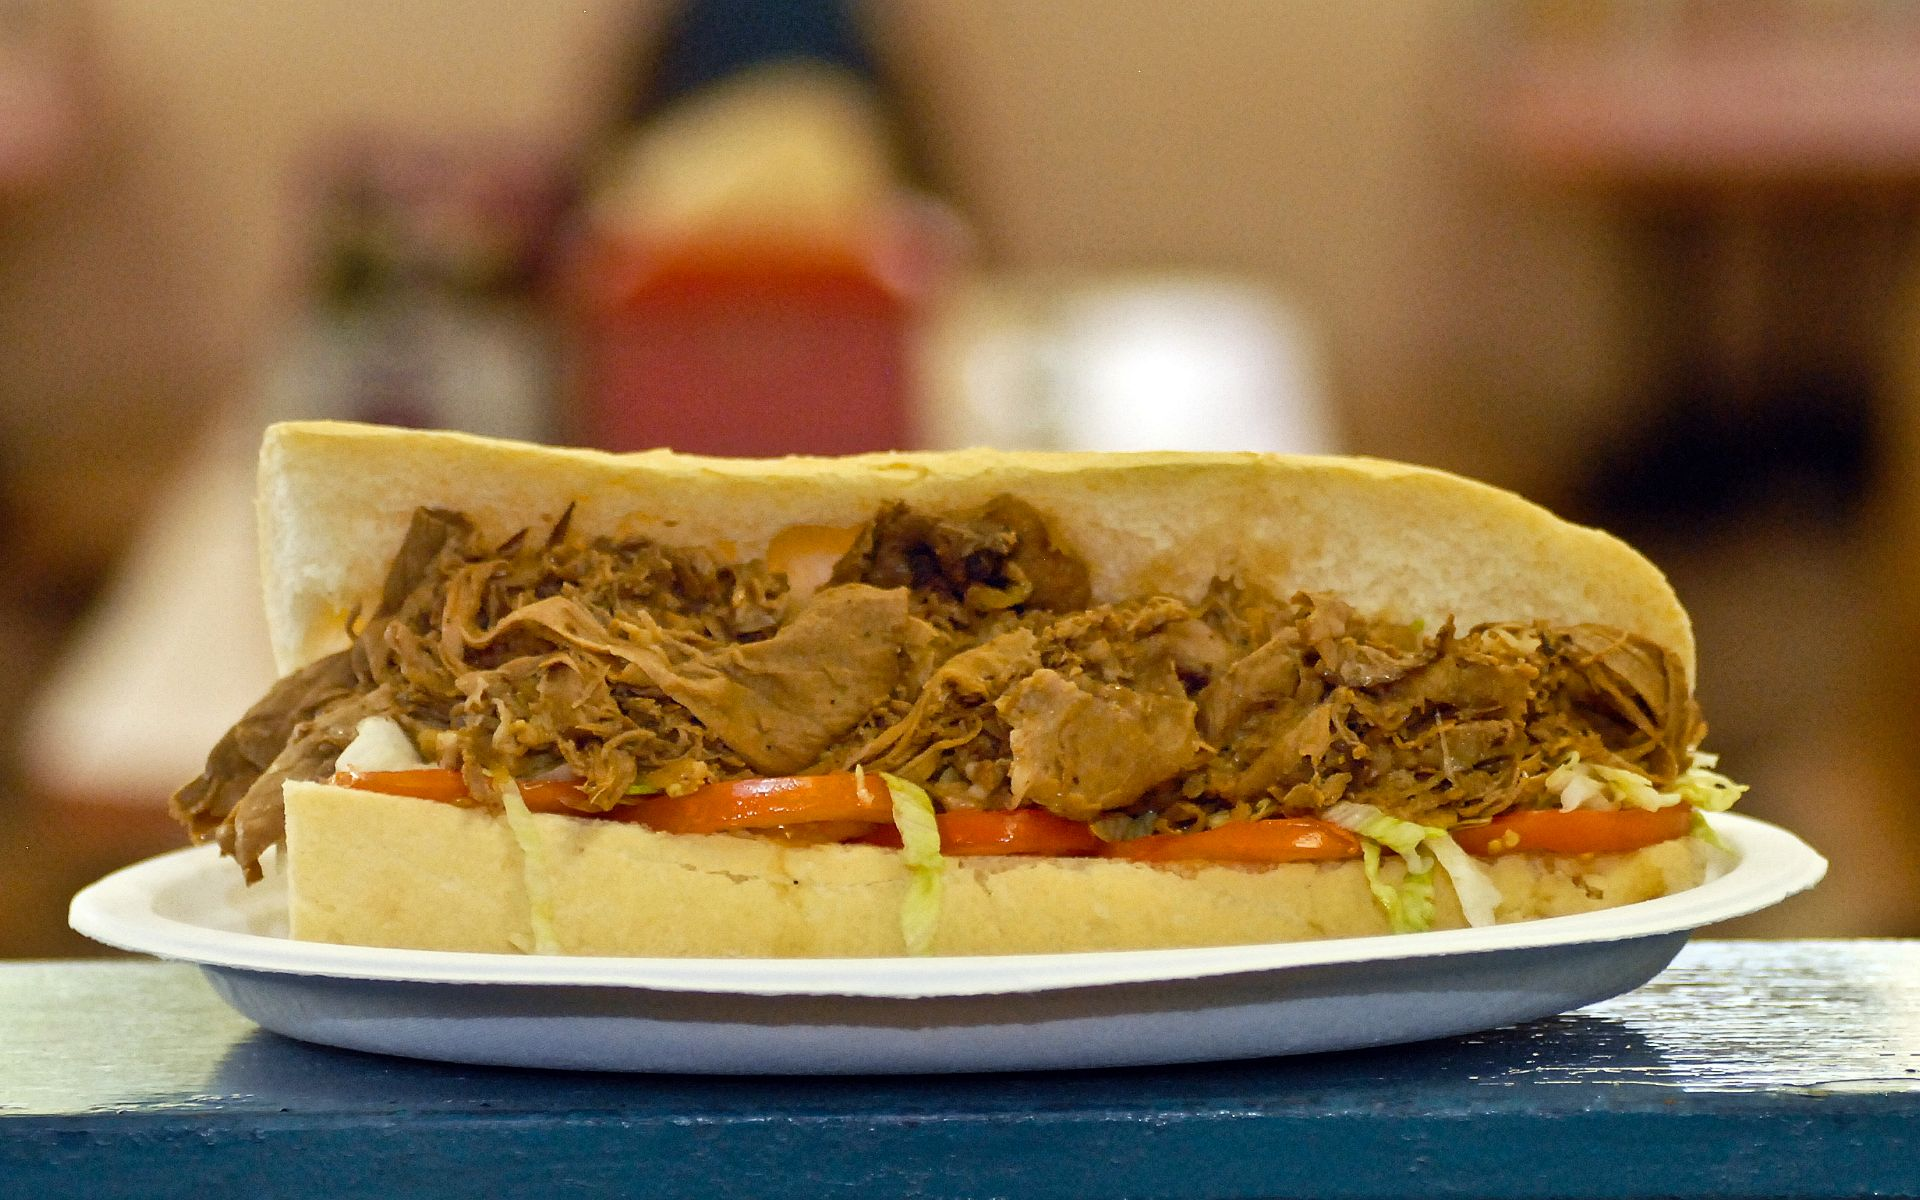 Pulled pork poboy with lettuce and tomato served on a white plate on top of the counter